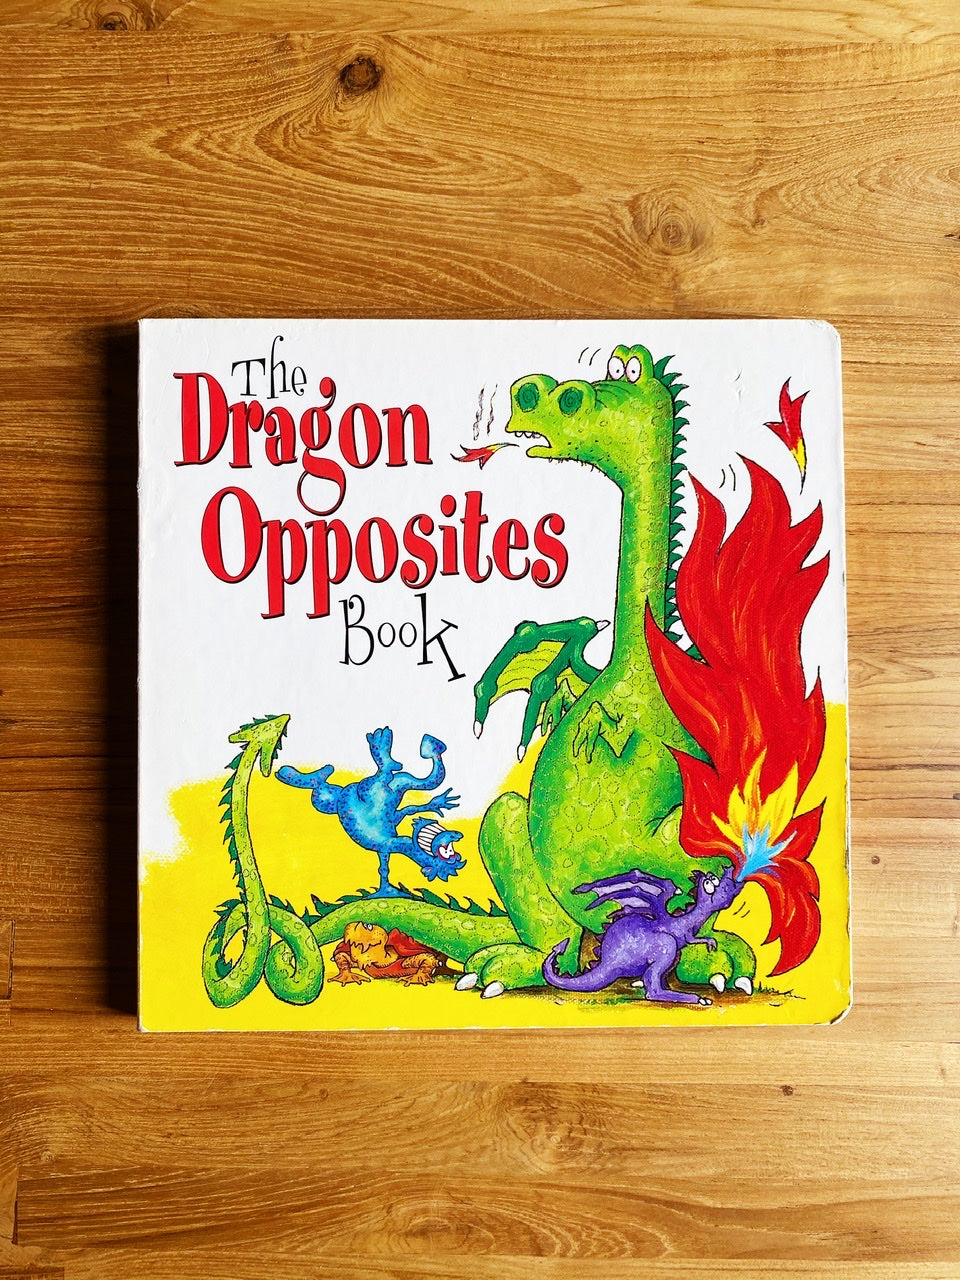 The Dragon Opposites Book by Gene Yates